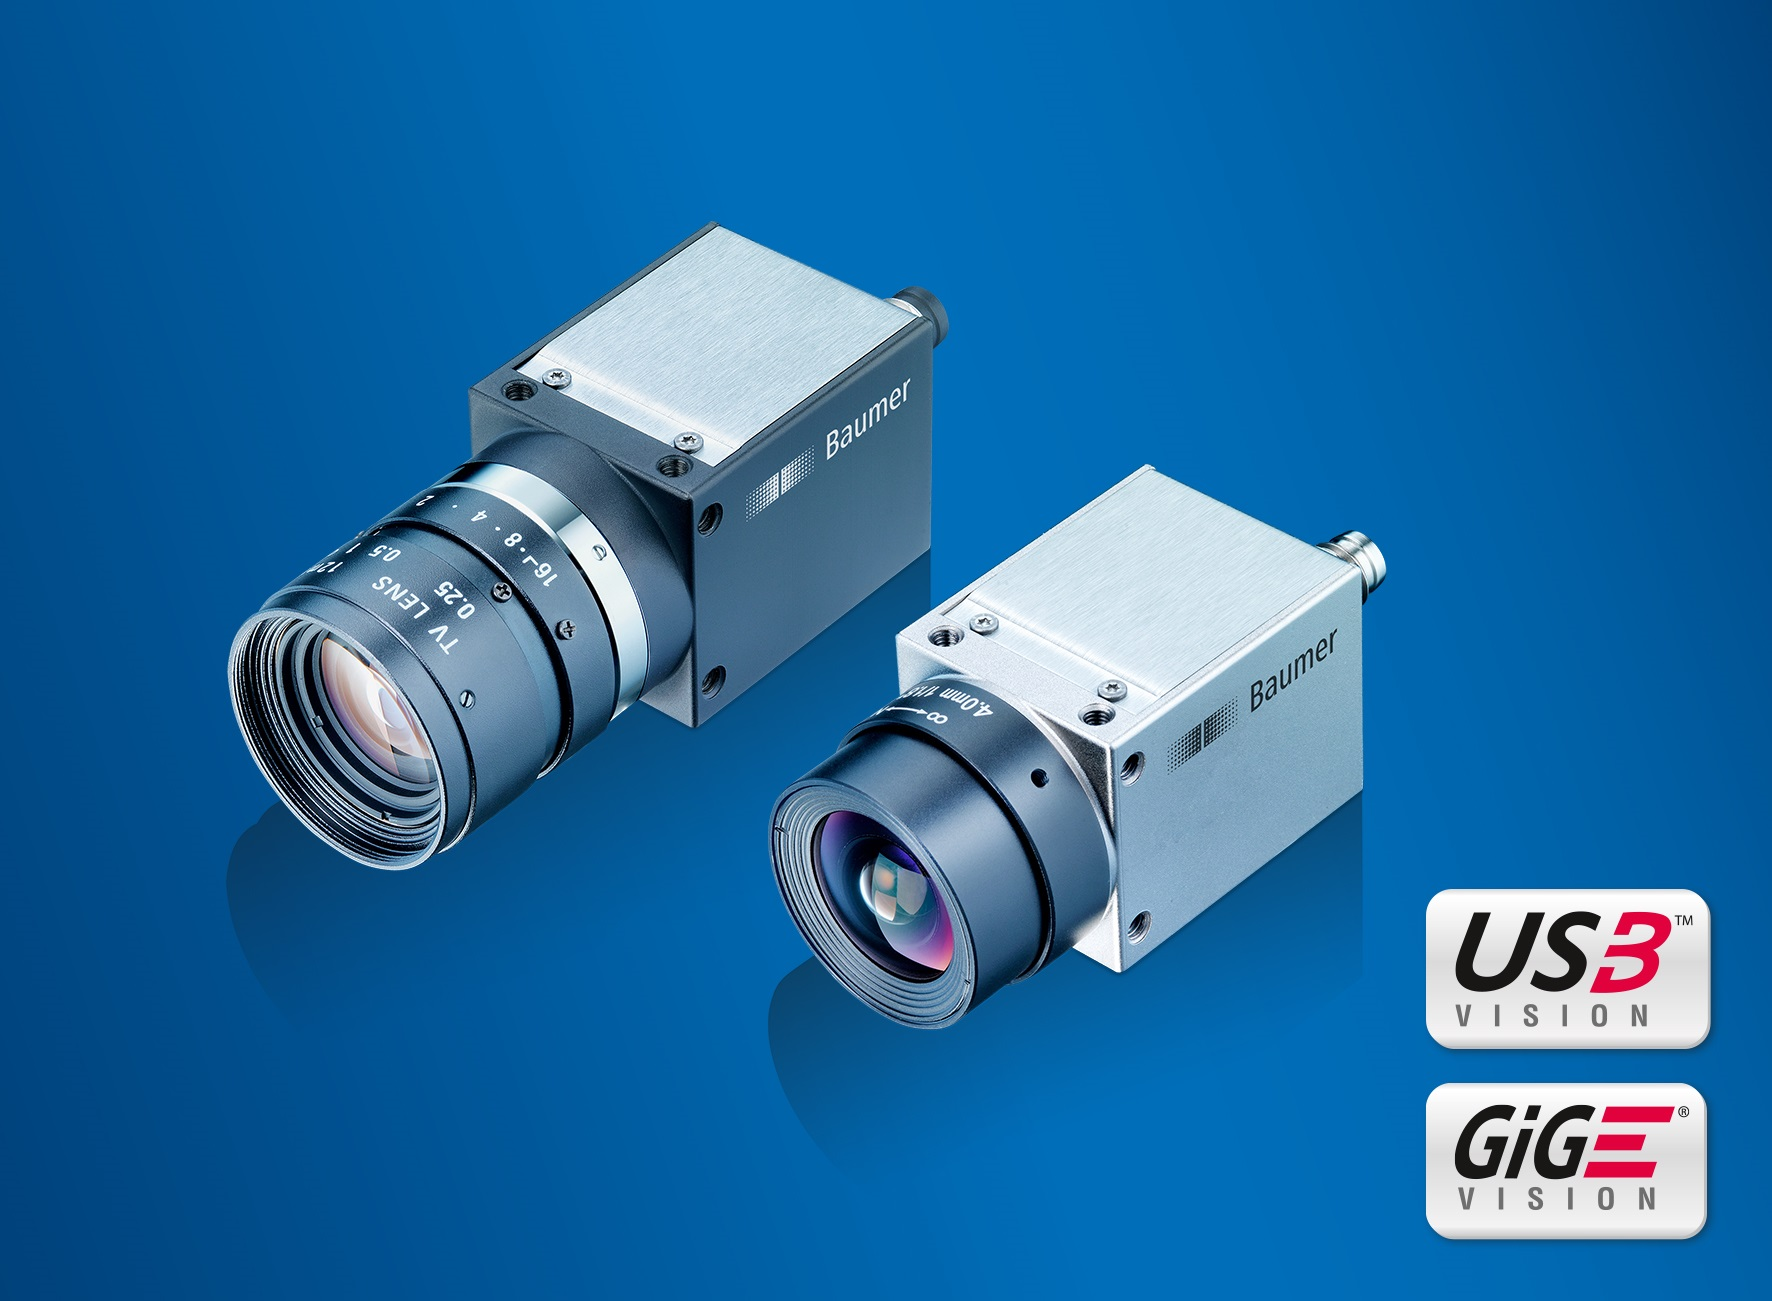 10 new models with rolling shutter sensors were added to the successful CX and EX Baumer camera series which now offers resolutions with 20 and 10 megapixel, respectively.